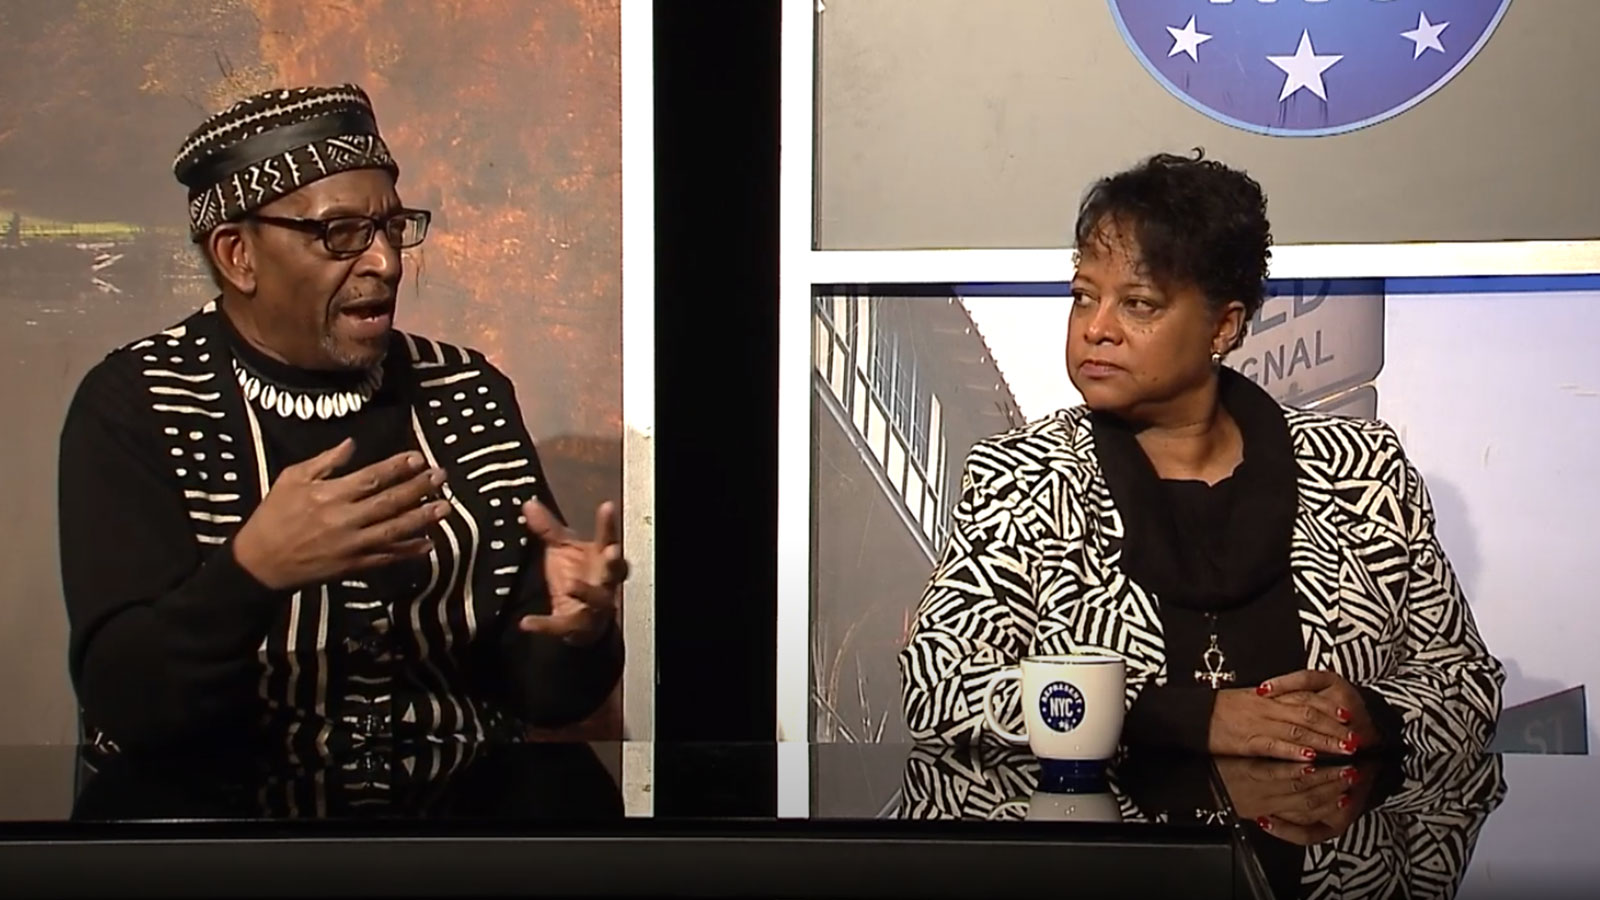 Represent NYC: What would reparations look like and why are they needed?